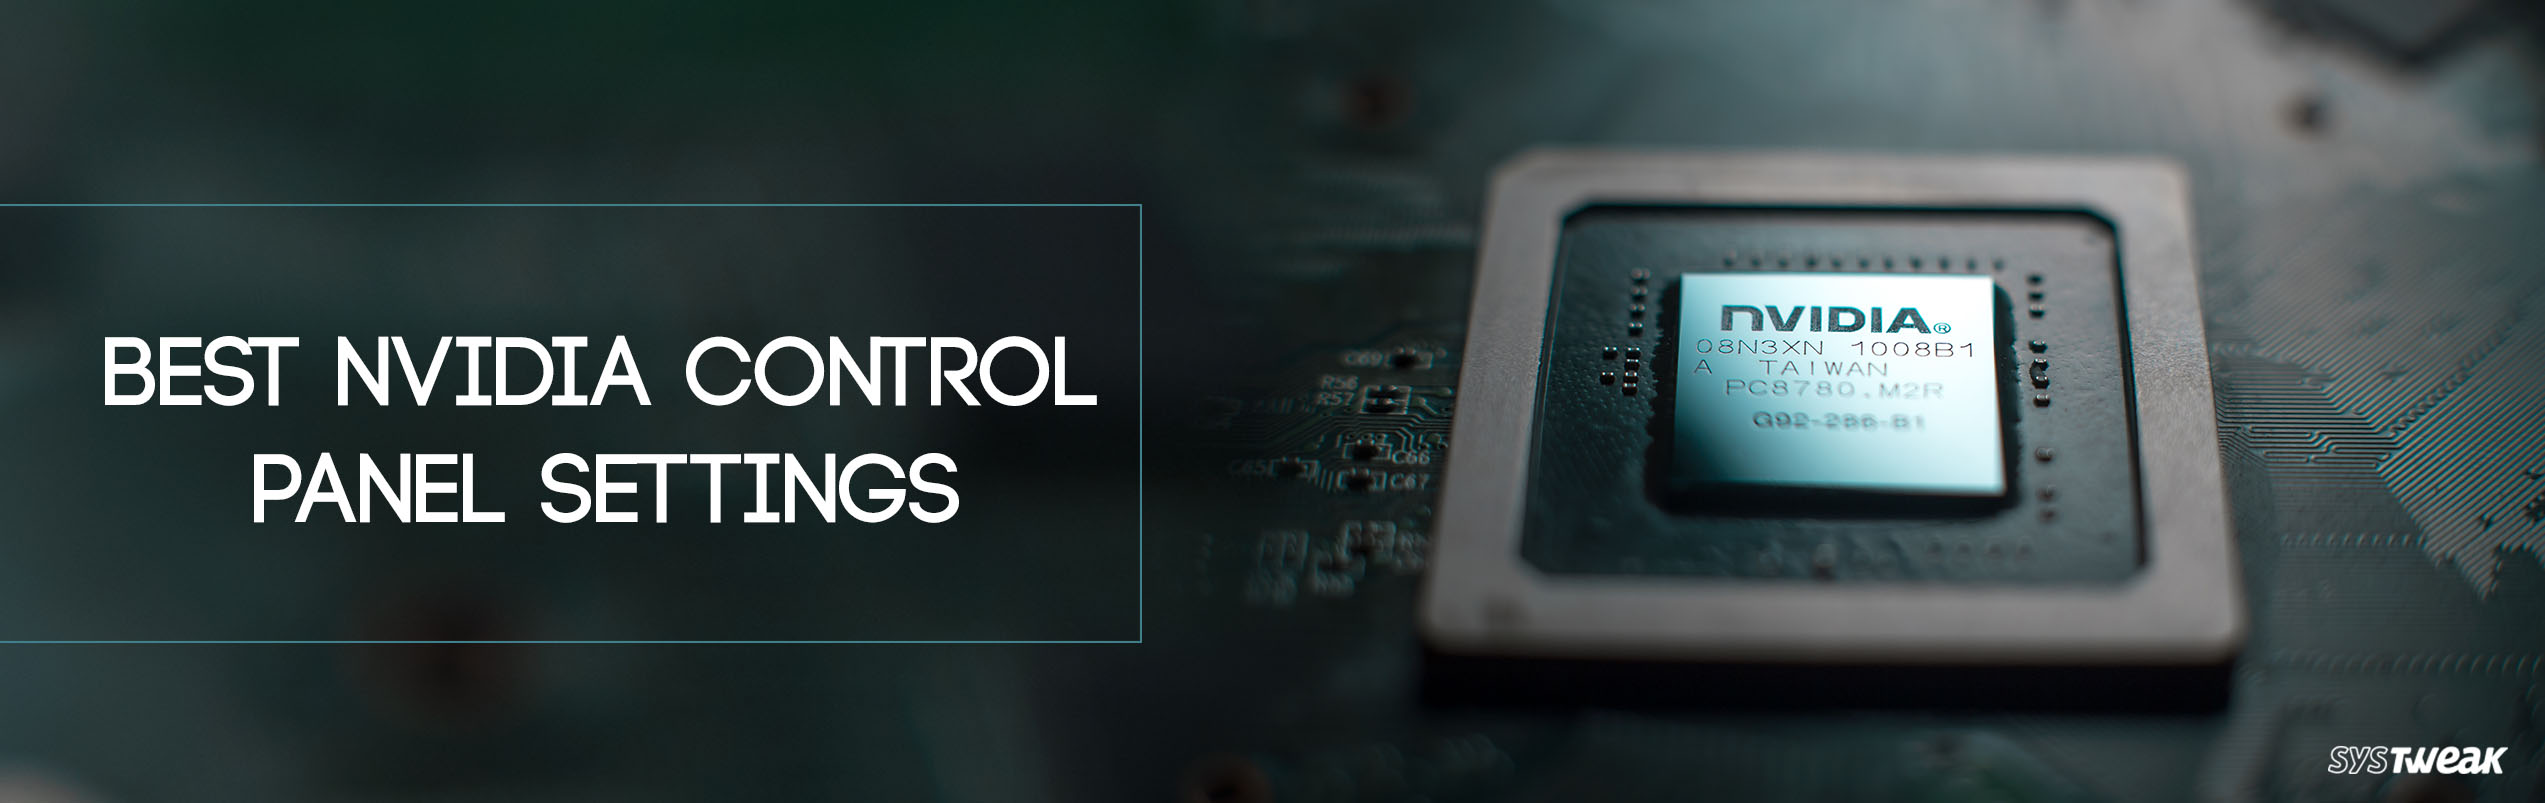 6 Best NVIDIA Control Panel Settings For Windows